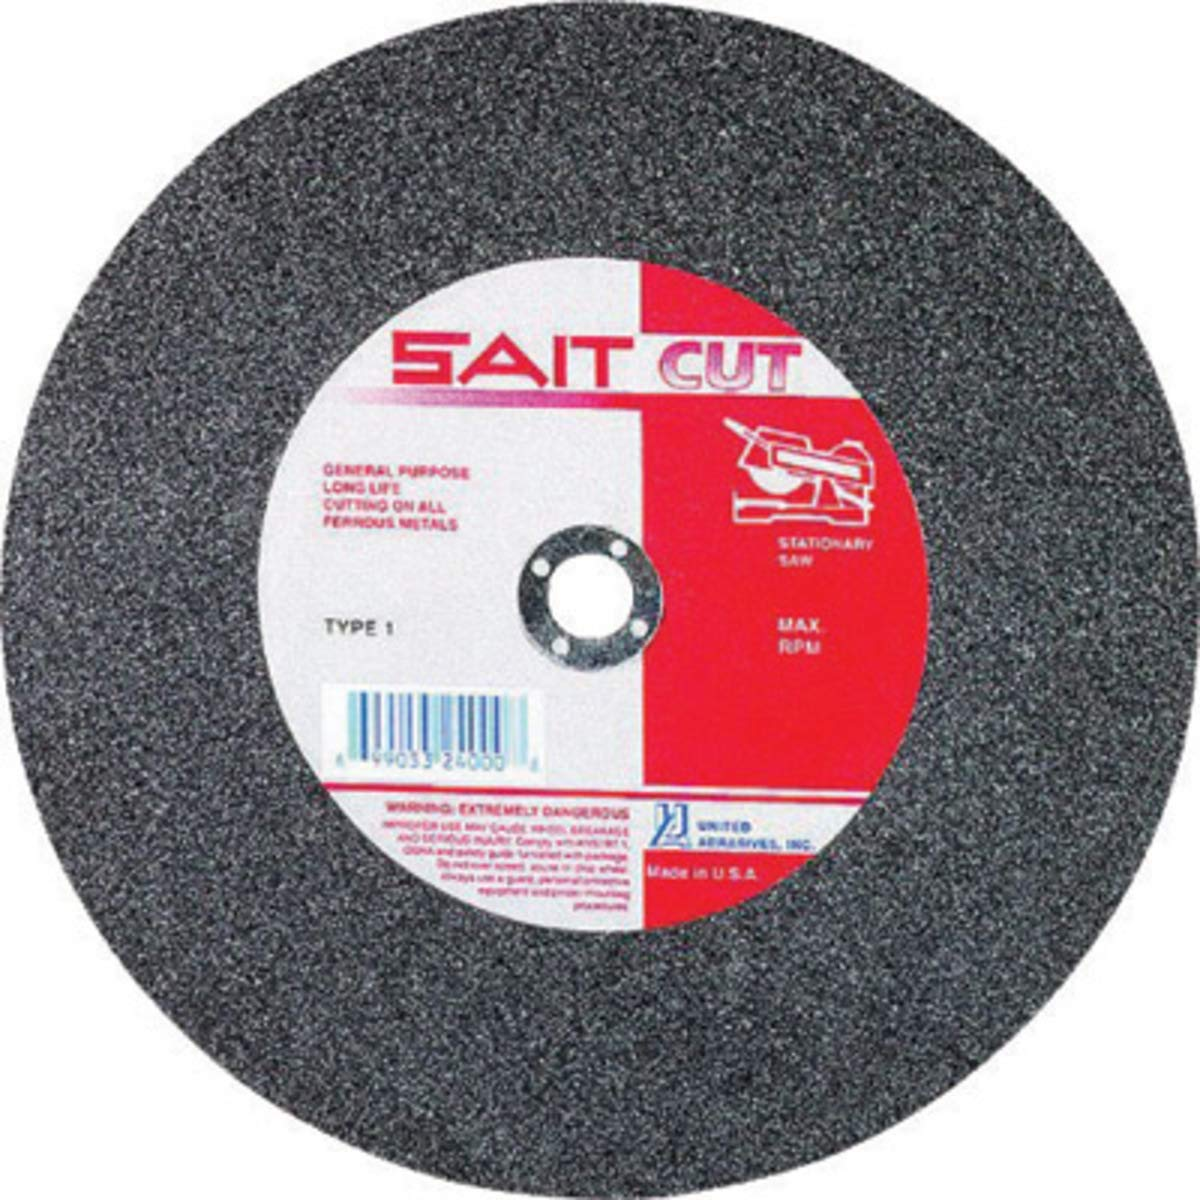 """United Abrasives 20"""" X 3/16"""" X 1"""" A36R 36 Grit Aluminum Oxide Type 1 Cut Off Wheel, Package Size: 5 Each"""